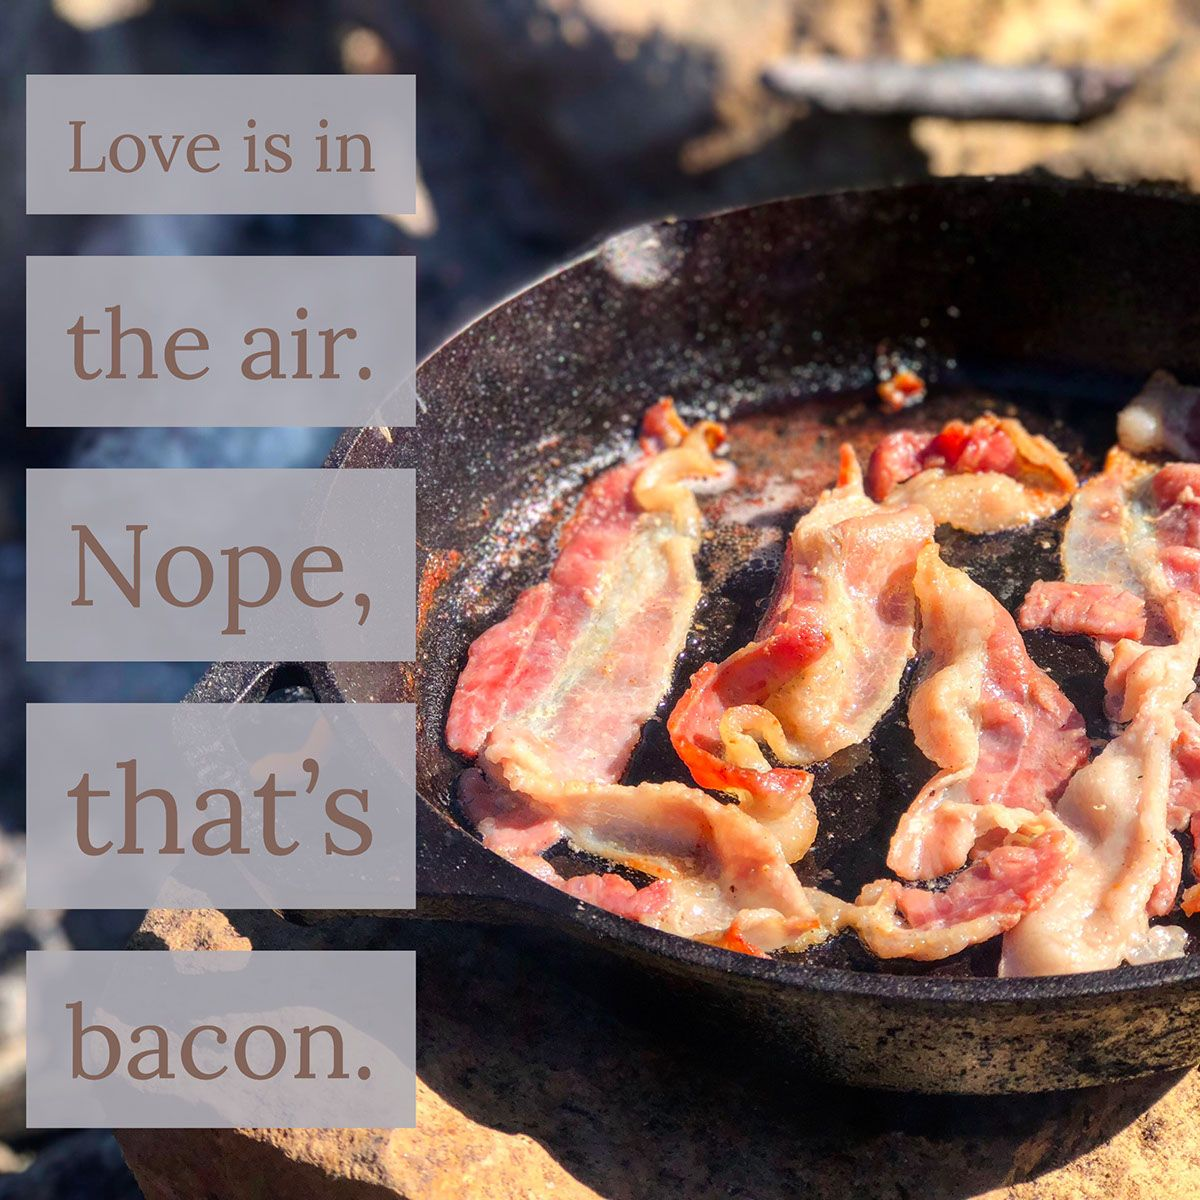 Love is in the air. Nope, that's bacon. Best food